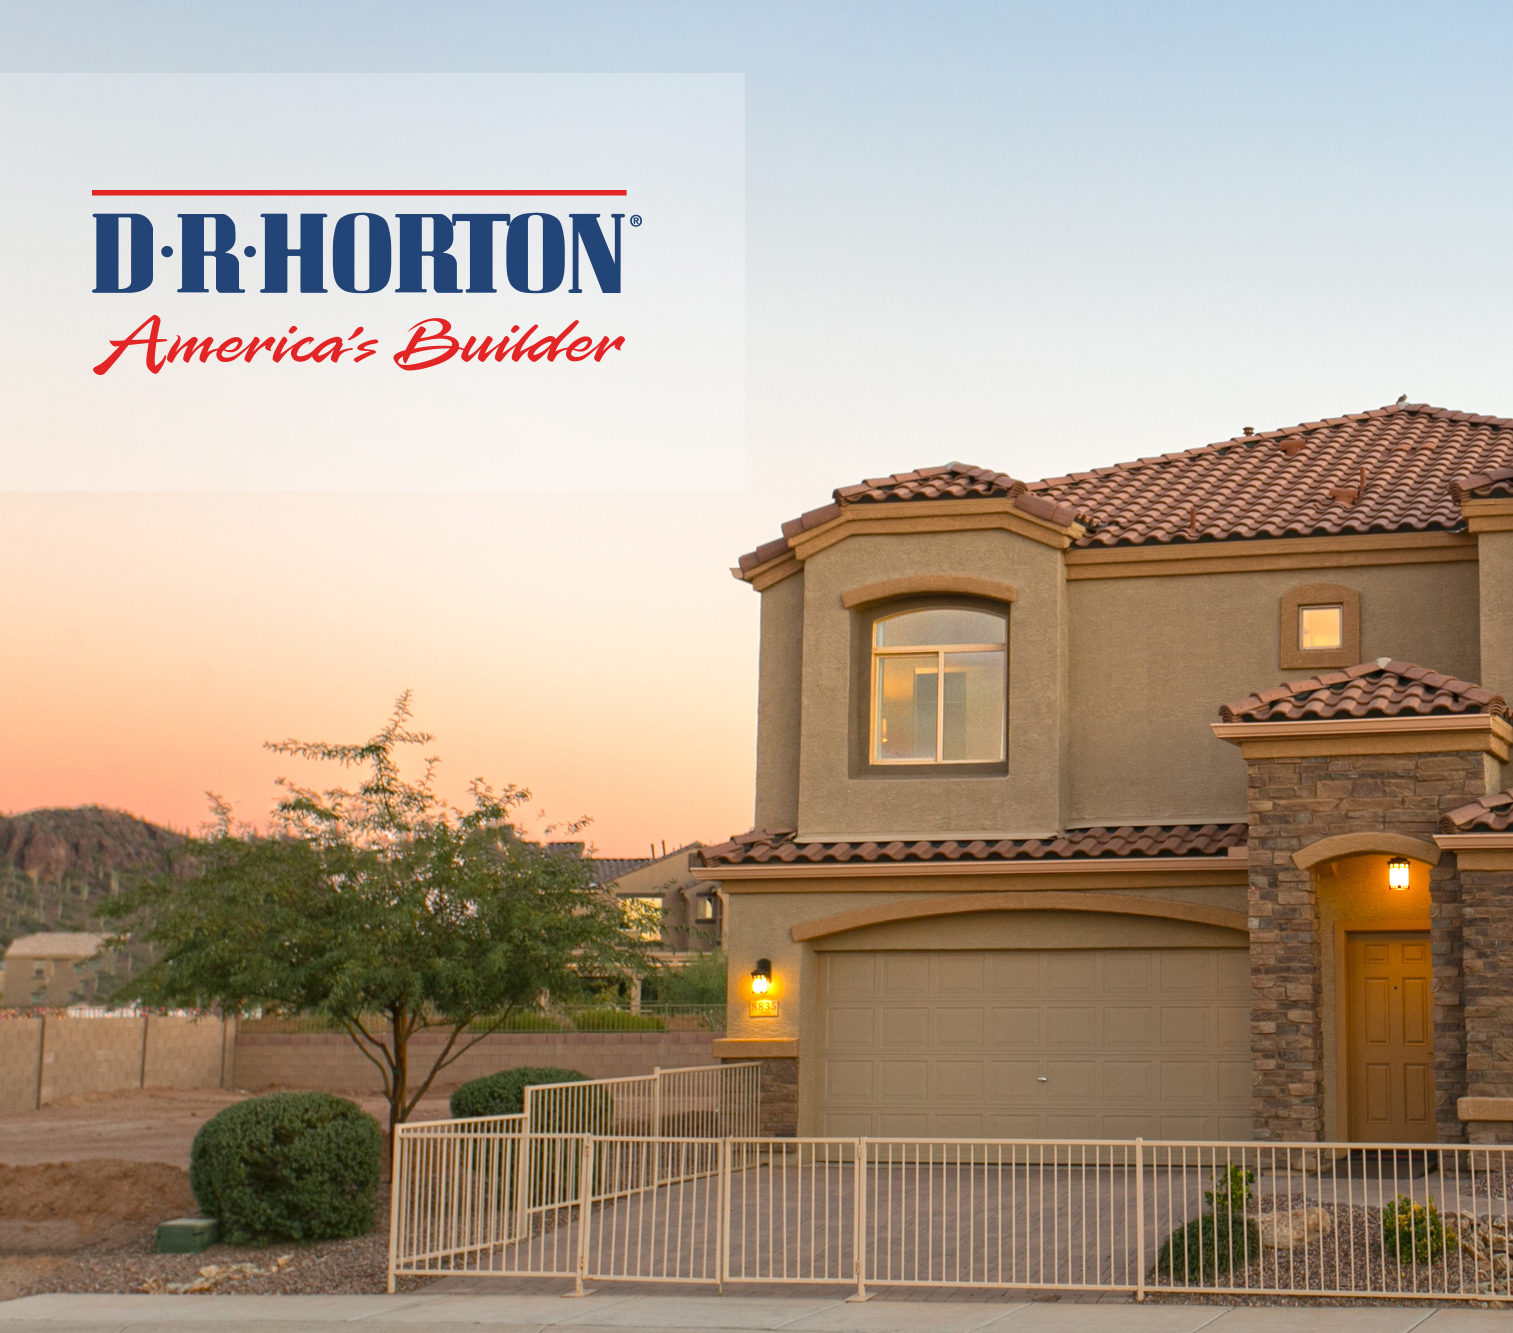 Dr horton homes new construction neighborhoods in tucson for Building a house in arizona